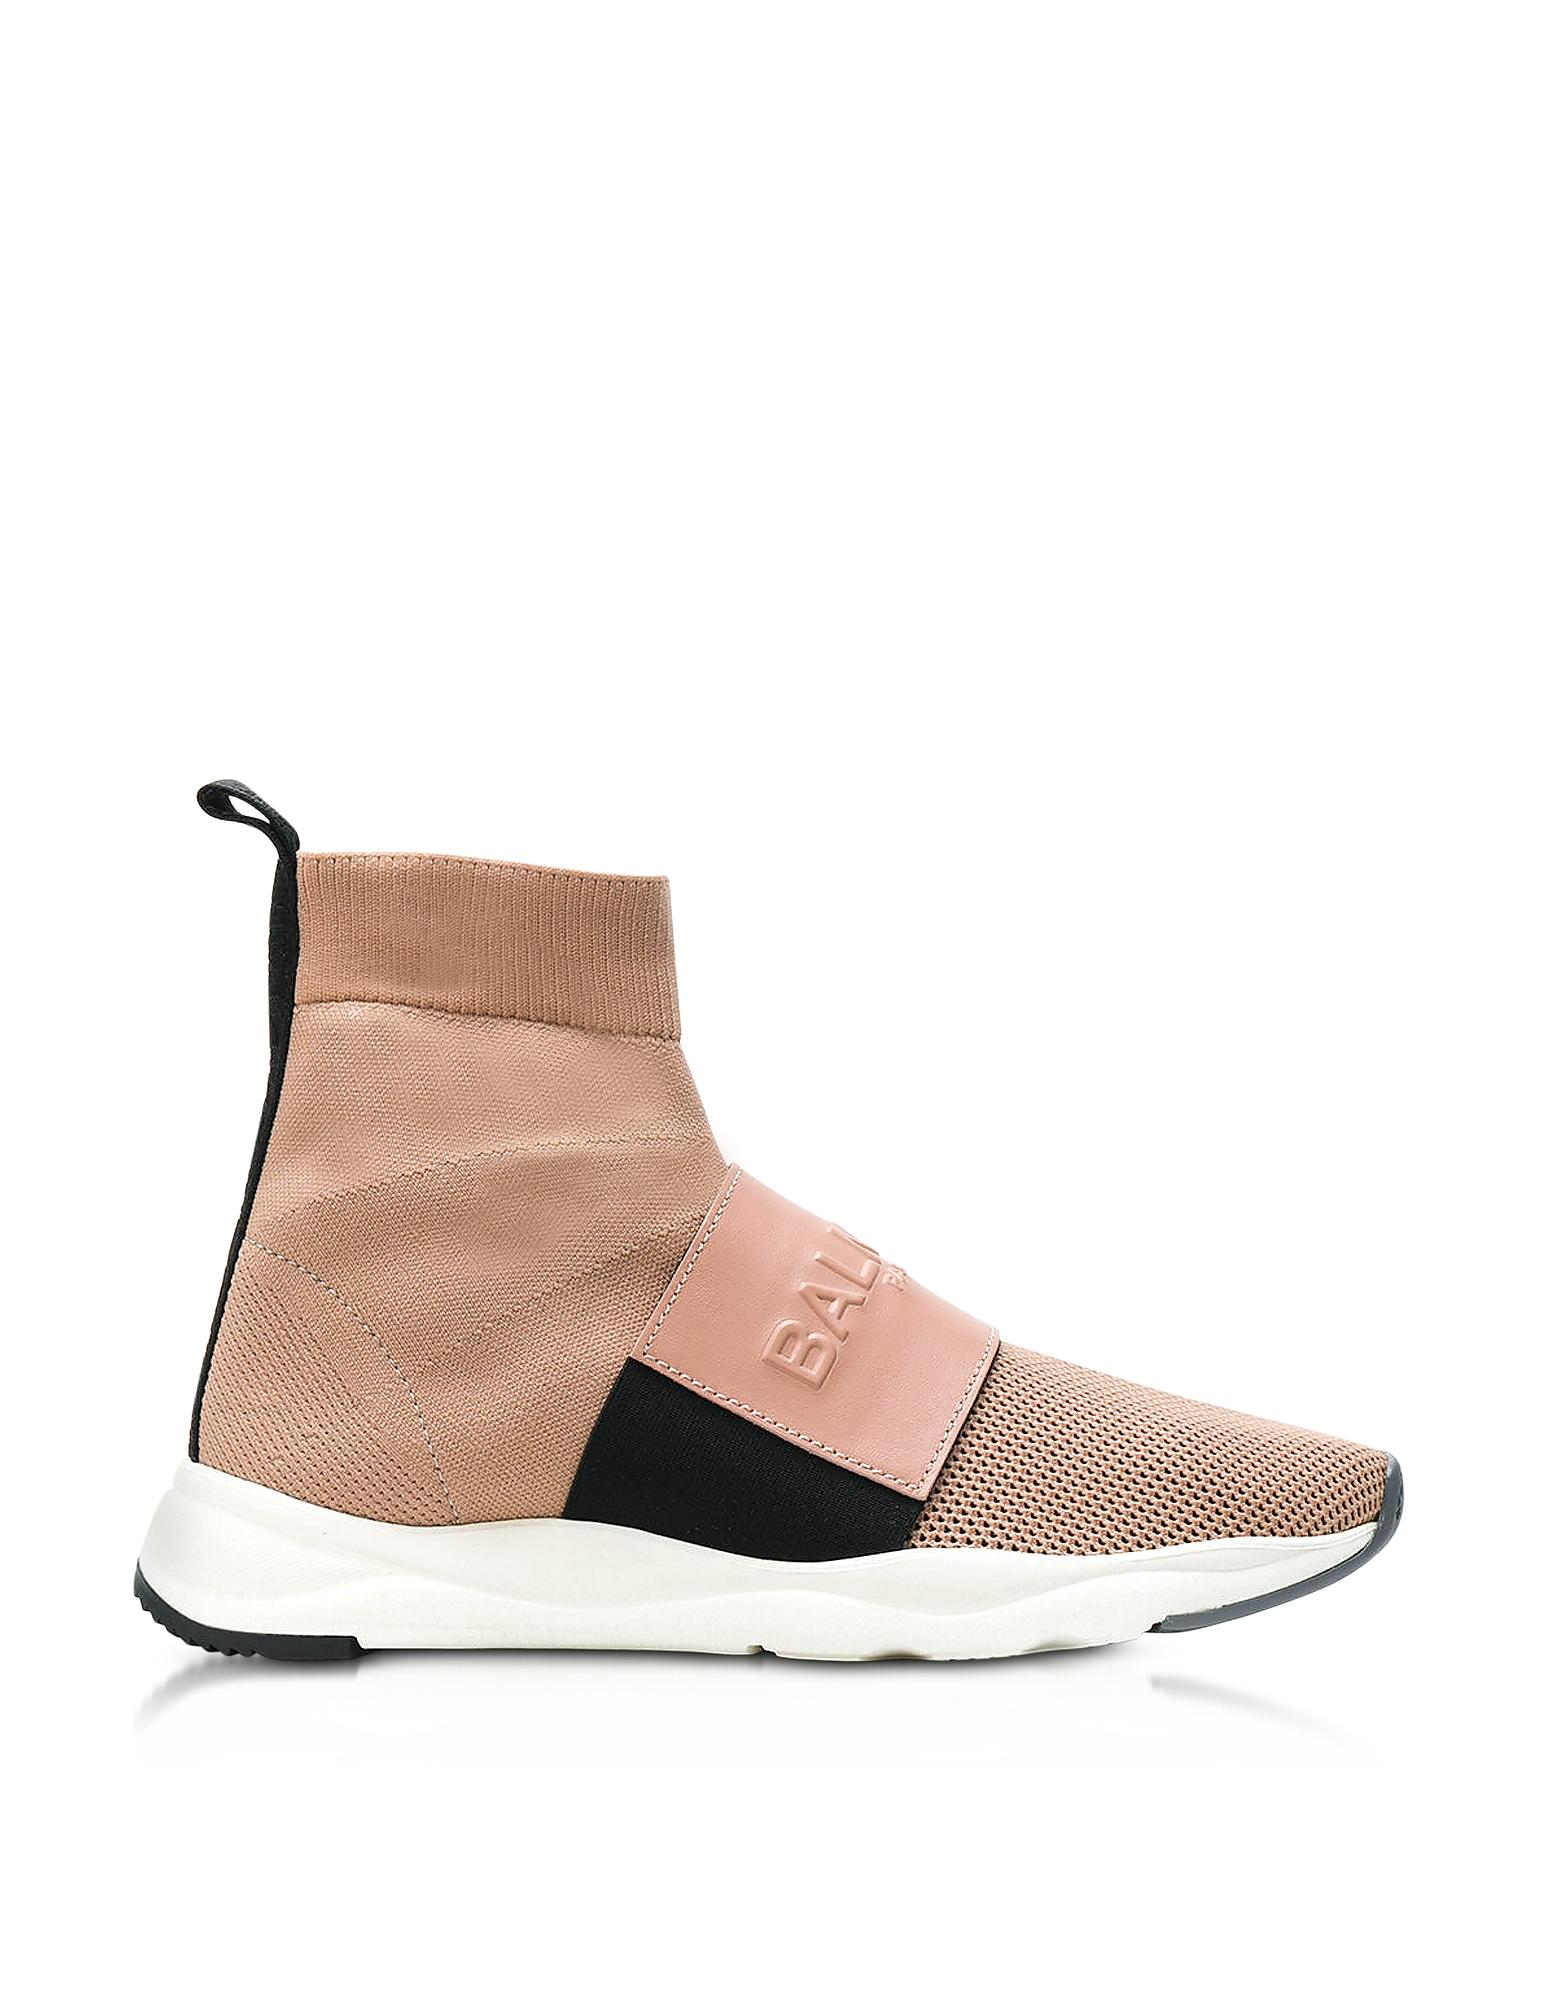 Balmain Powder Nylon And Leather Cameron Running Women's Sneakers In Nude